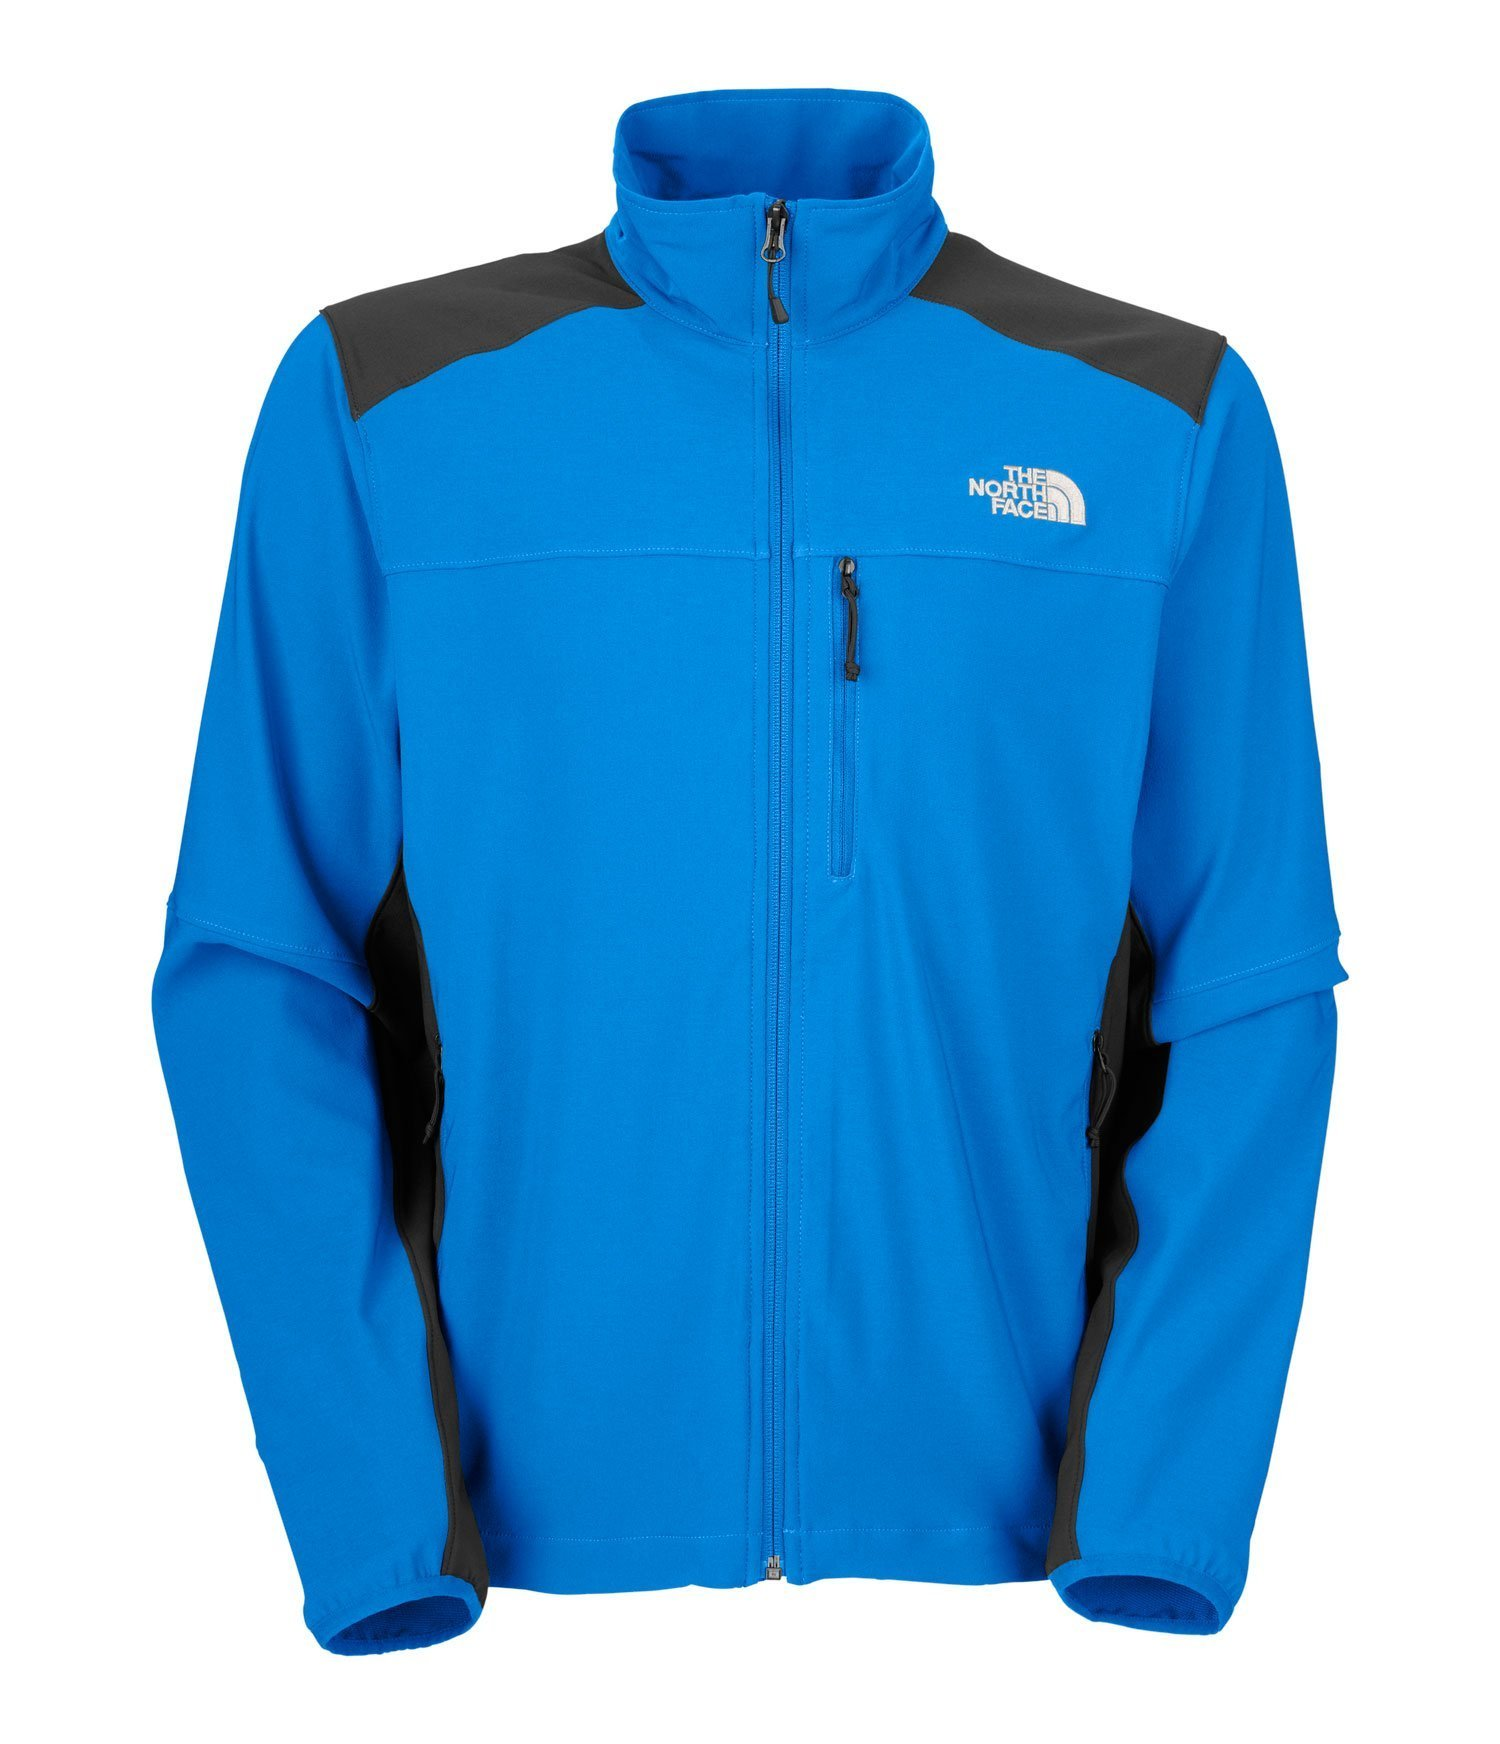 North face nimble apex herre fleecejakke fra The north face fra billigsport24